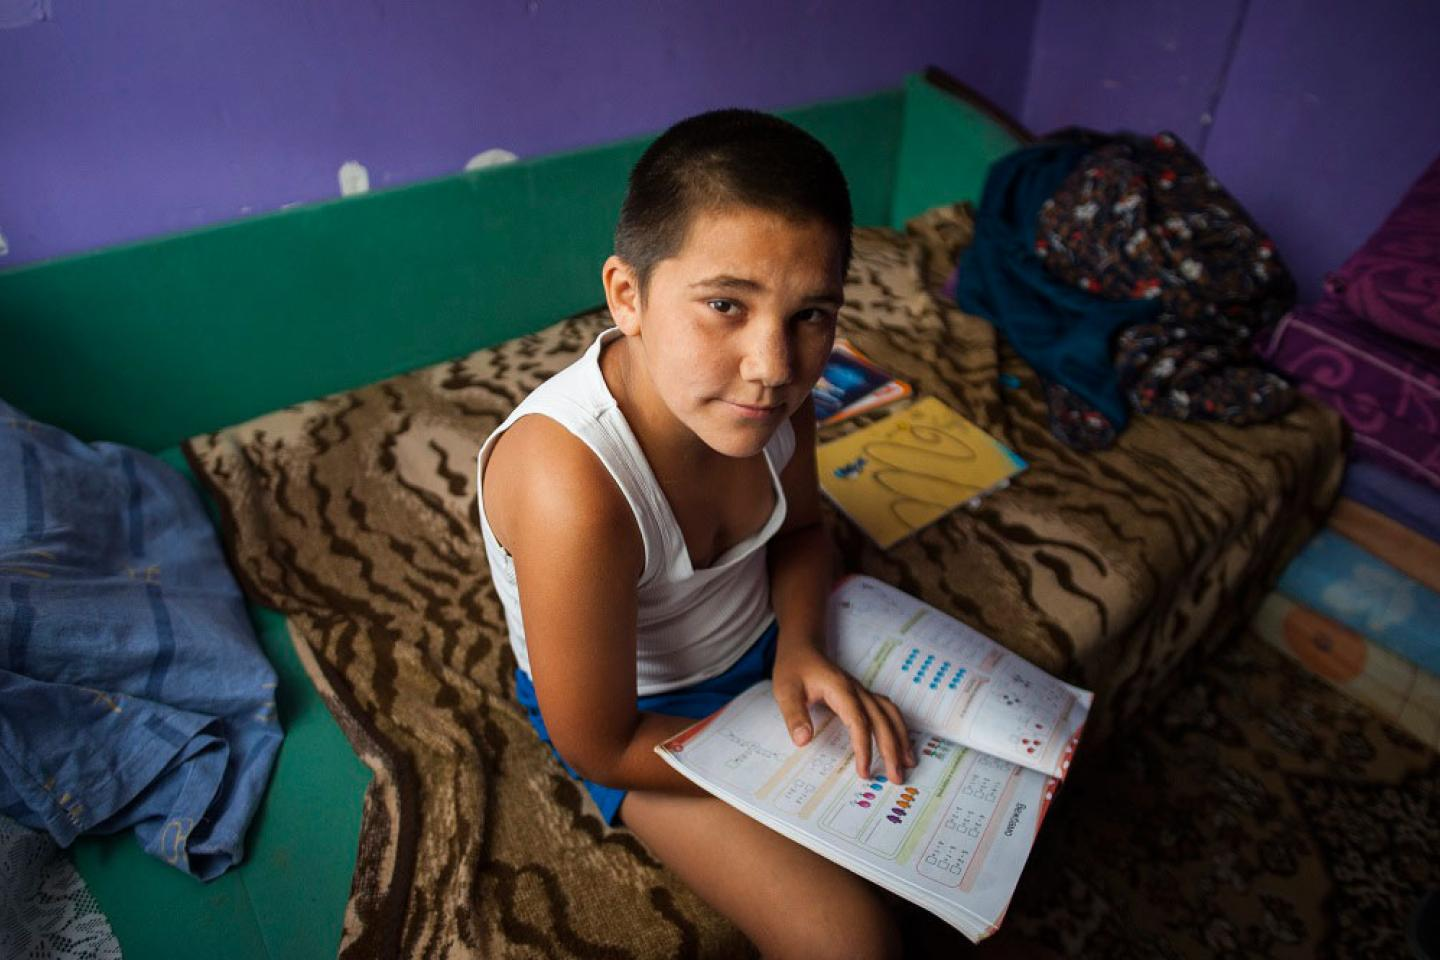 A boy sits on a bed, a school book on his lap